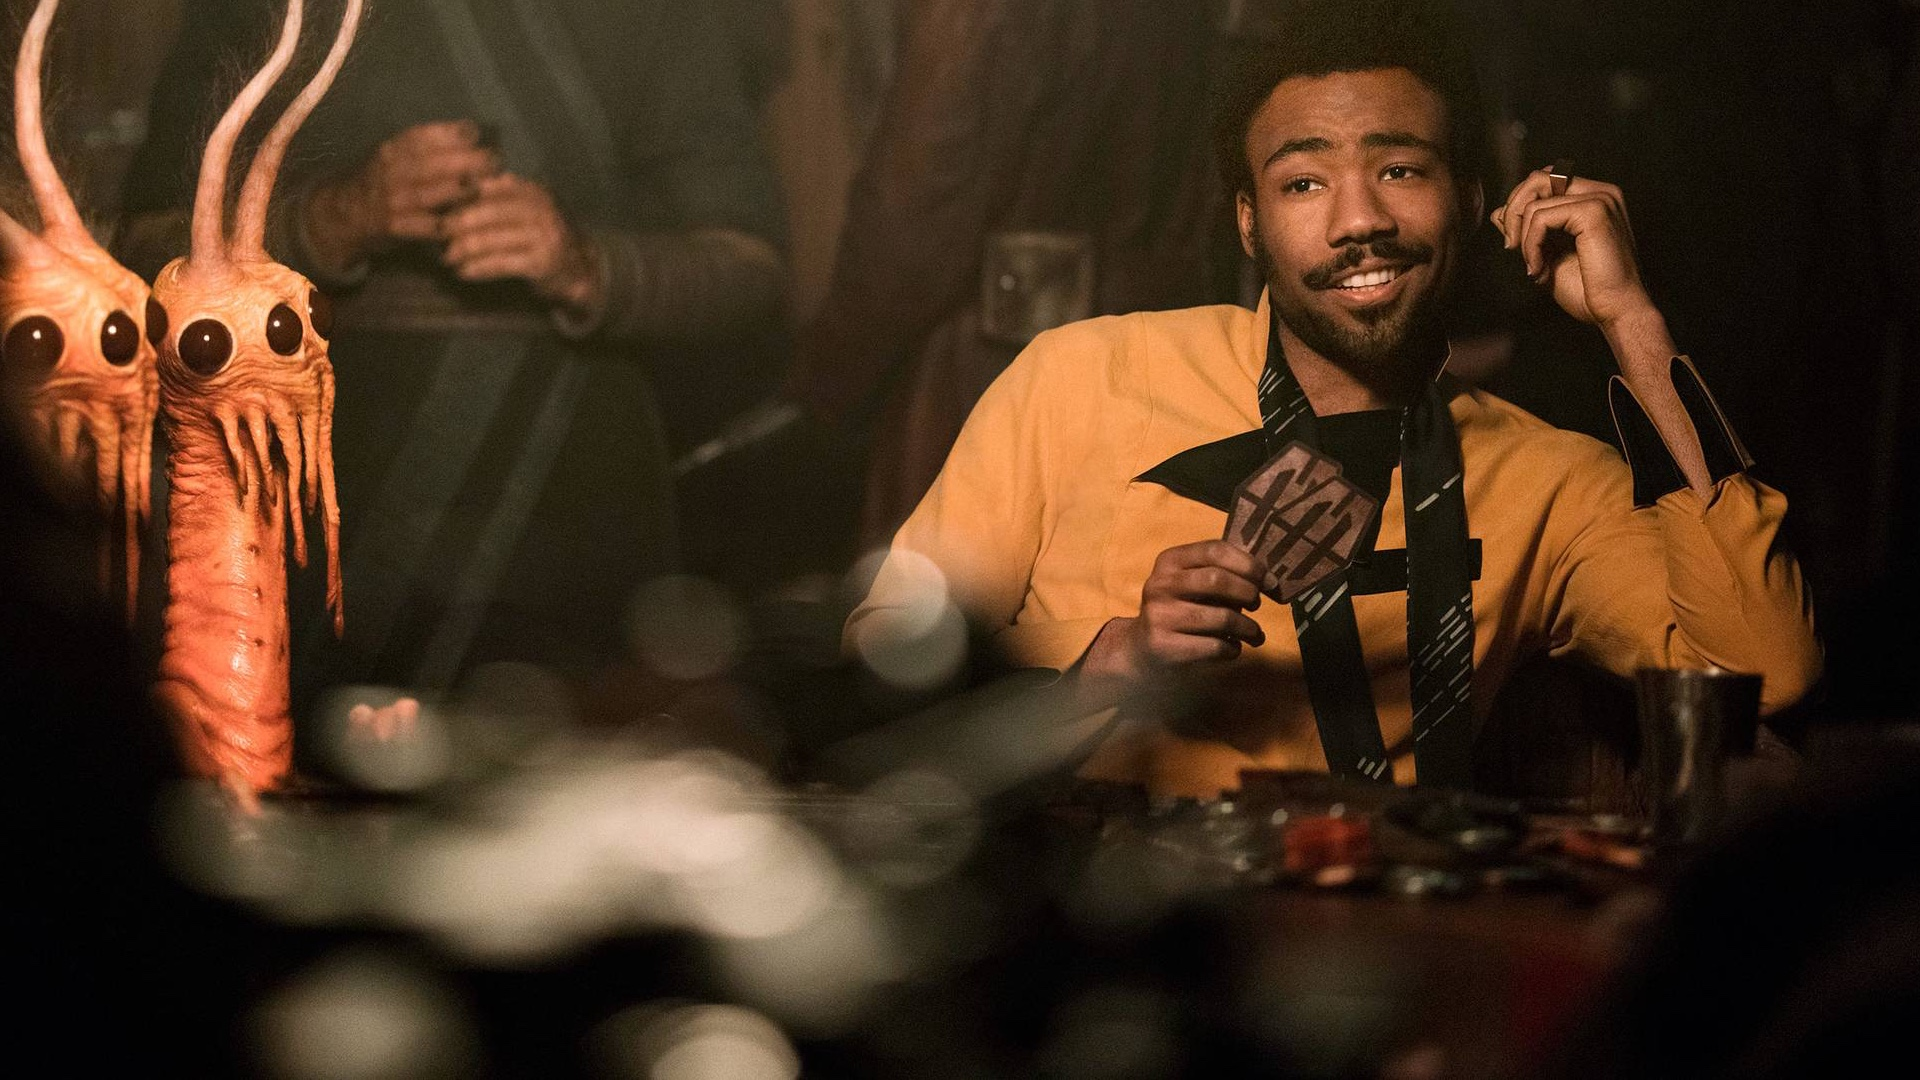 donald-glover-opens-up-on-playing-lando-calrissian-in-solo-a-star-wars-story-and-offers-details-about-the-character-social.jpg